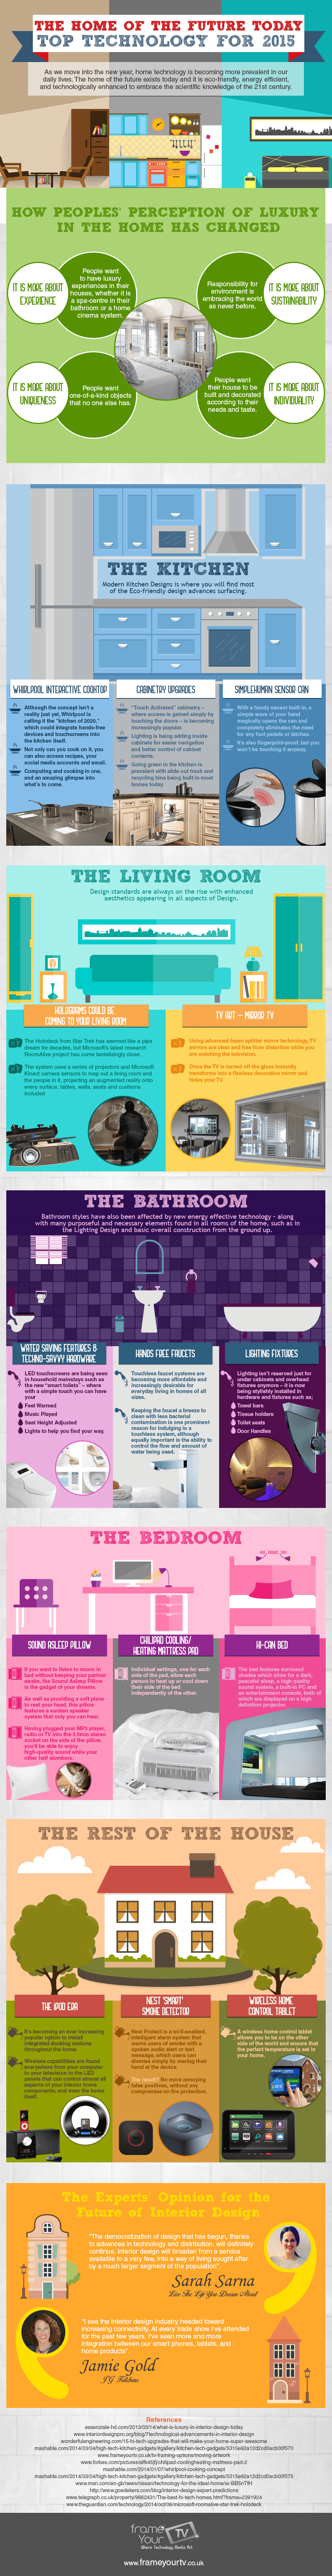 Frame-your-TV-21st-Century-Home-Technology-Infographic-plaza